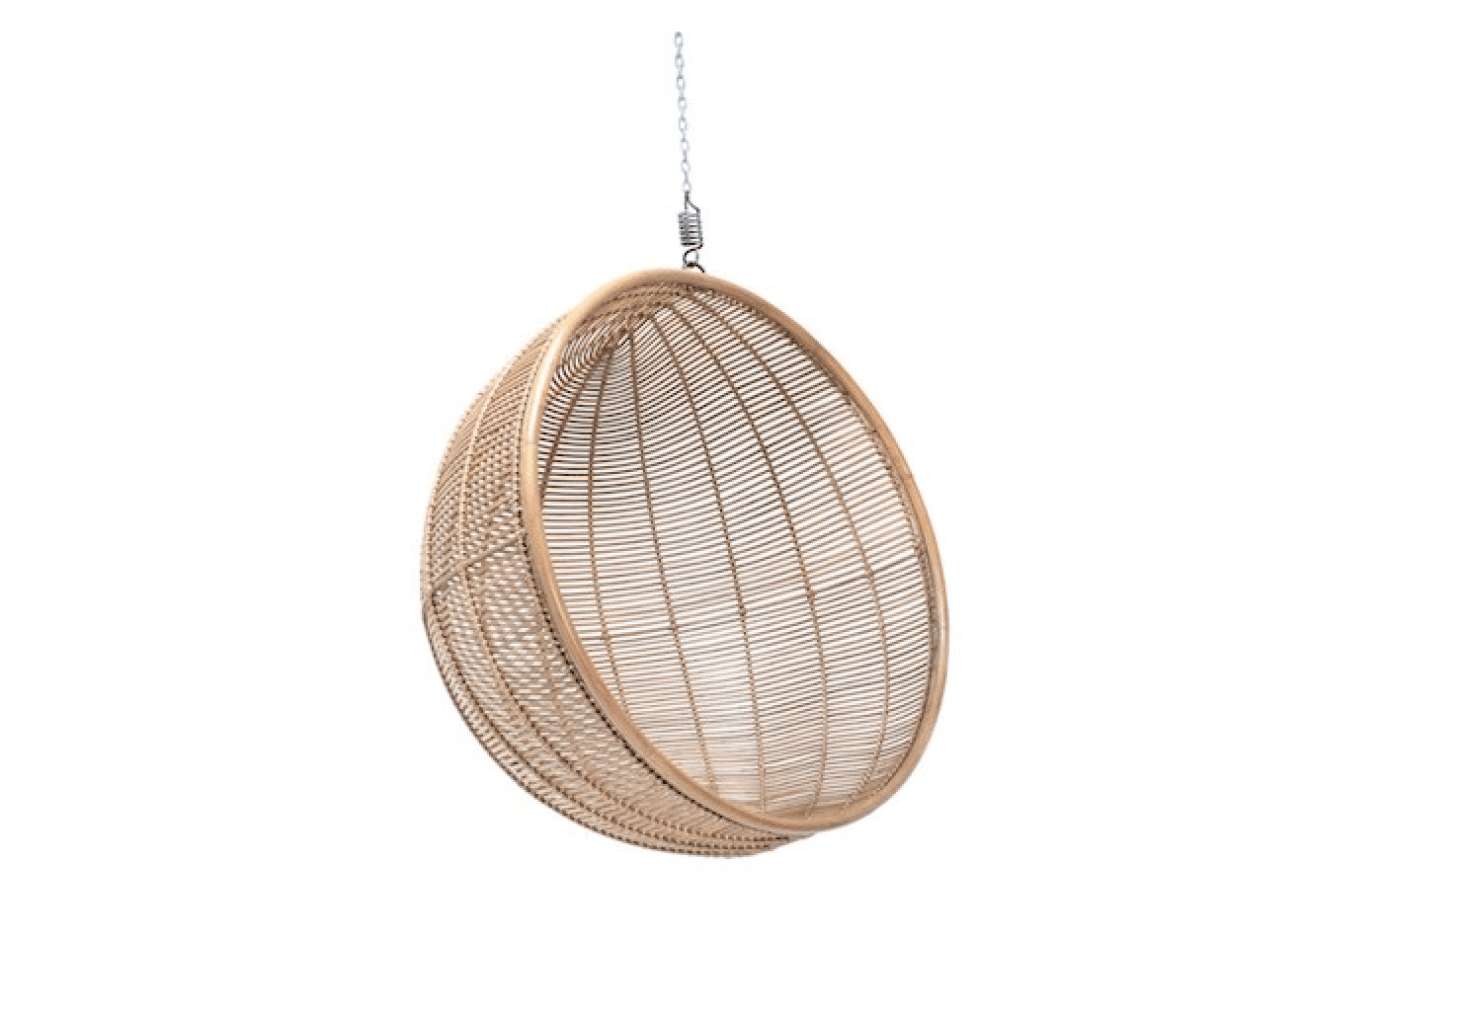 Charmant A Natural Hanging Rattan Bowl Chair Is £540 From Out There Interiors.